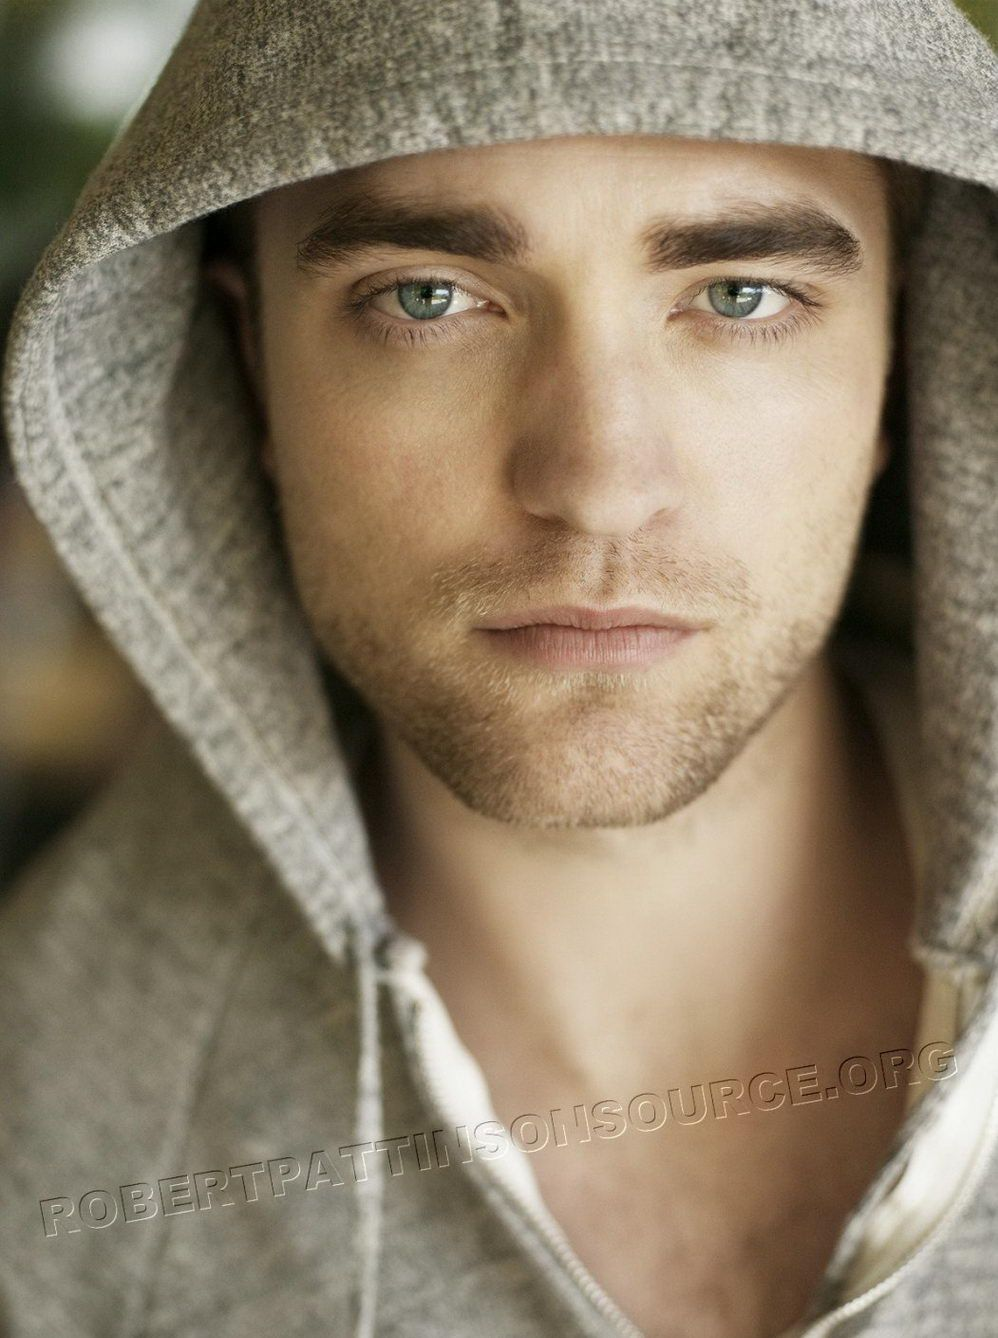 Handsome British actor Robert Pattinson | ⚔♛British! ツ ...